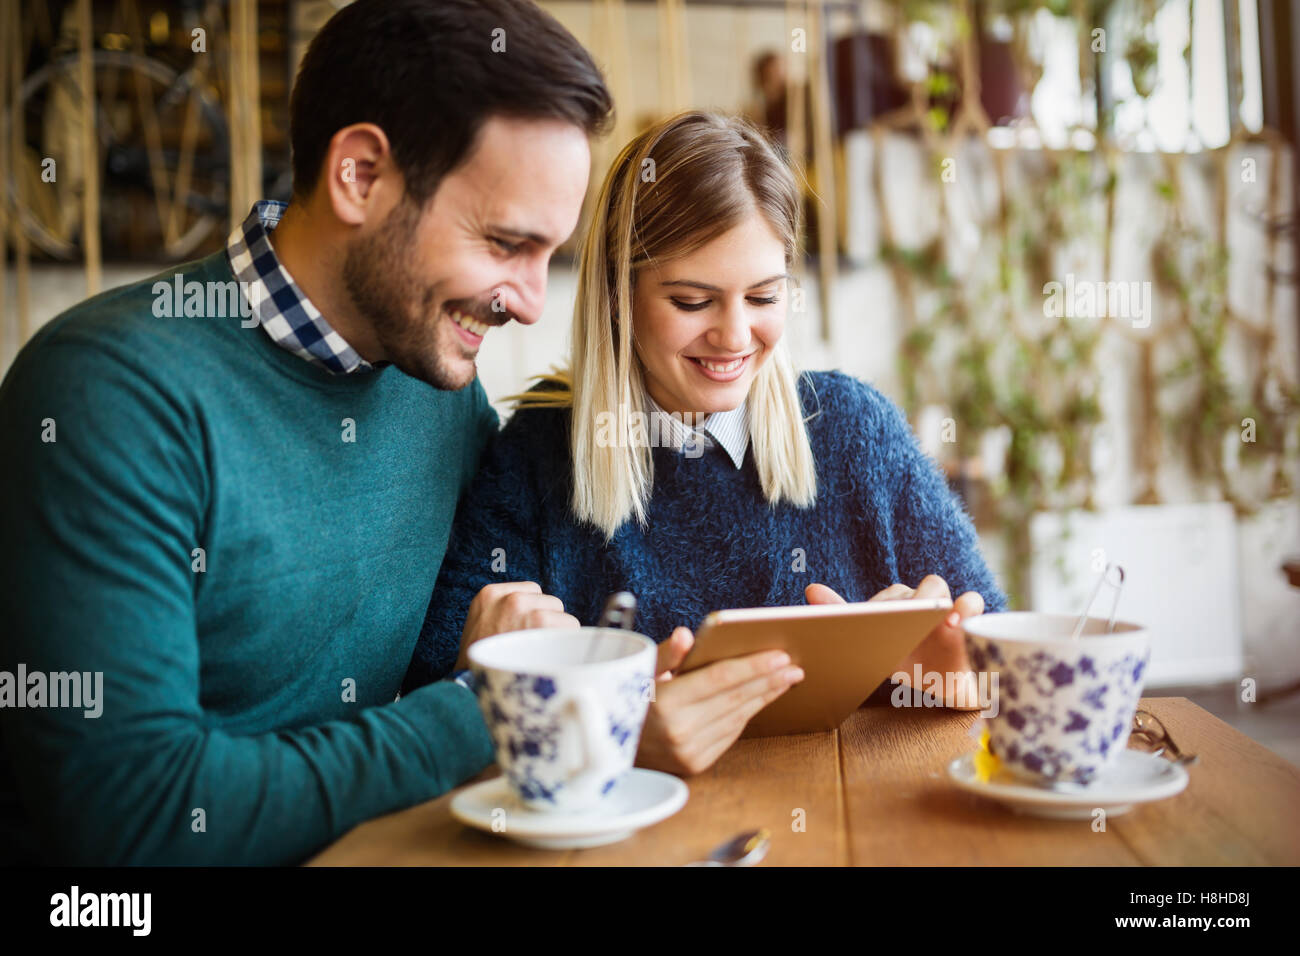 Couple in love  dating in restaurant - Stock Image